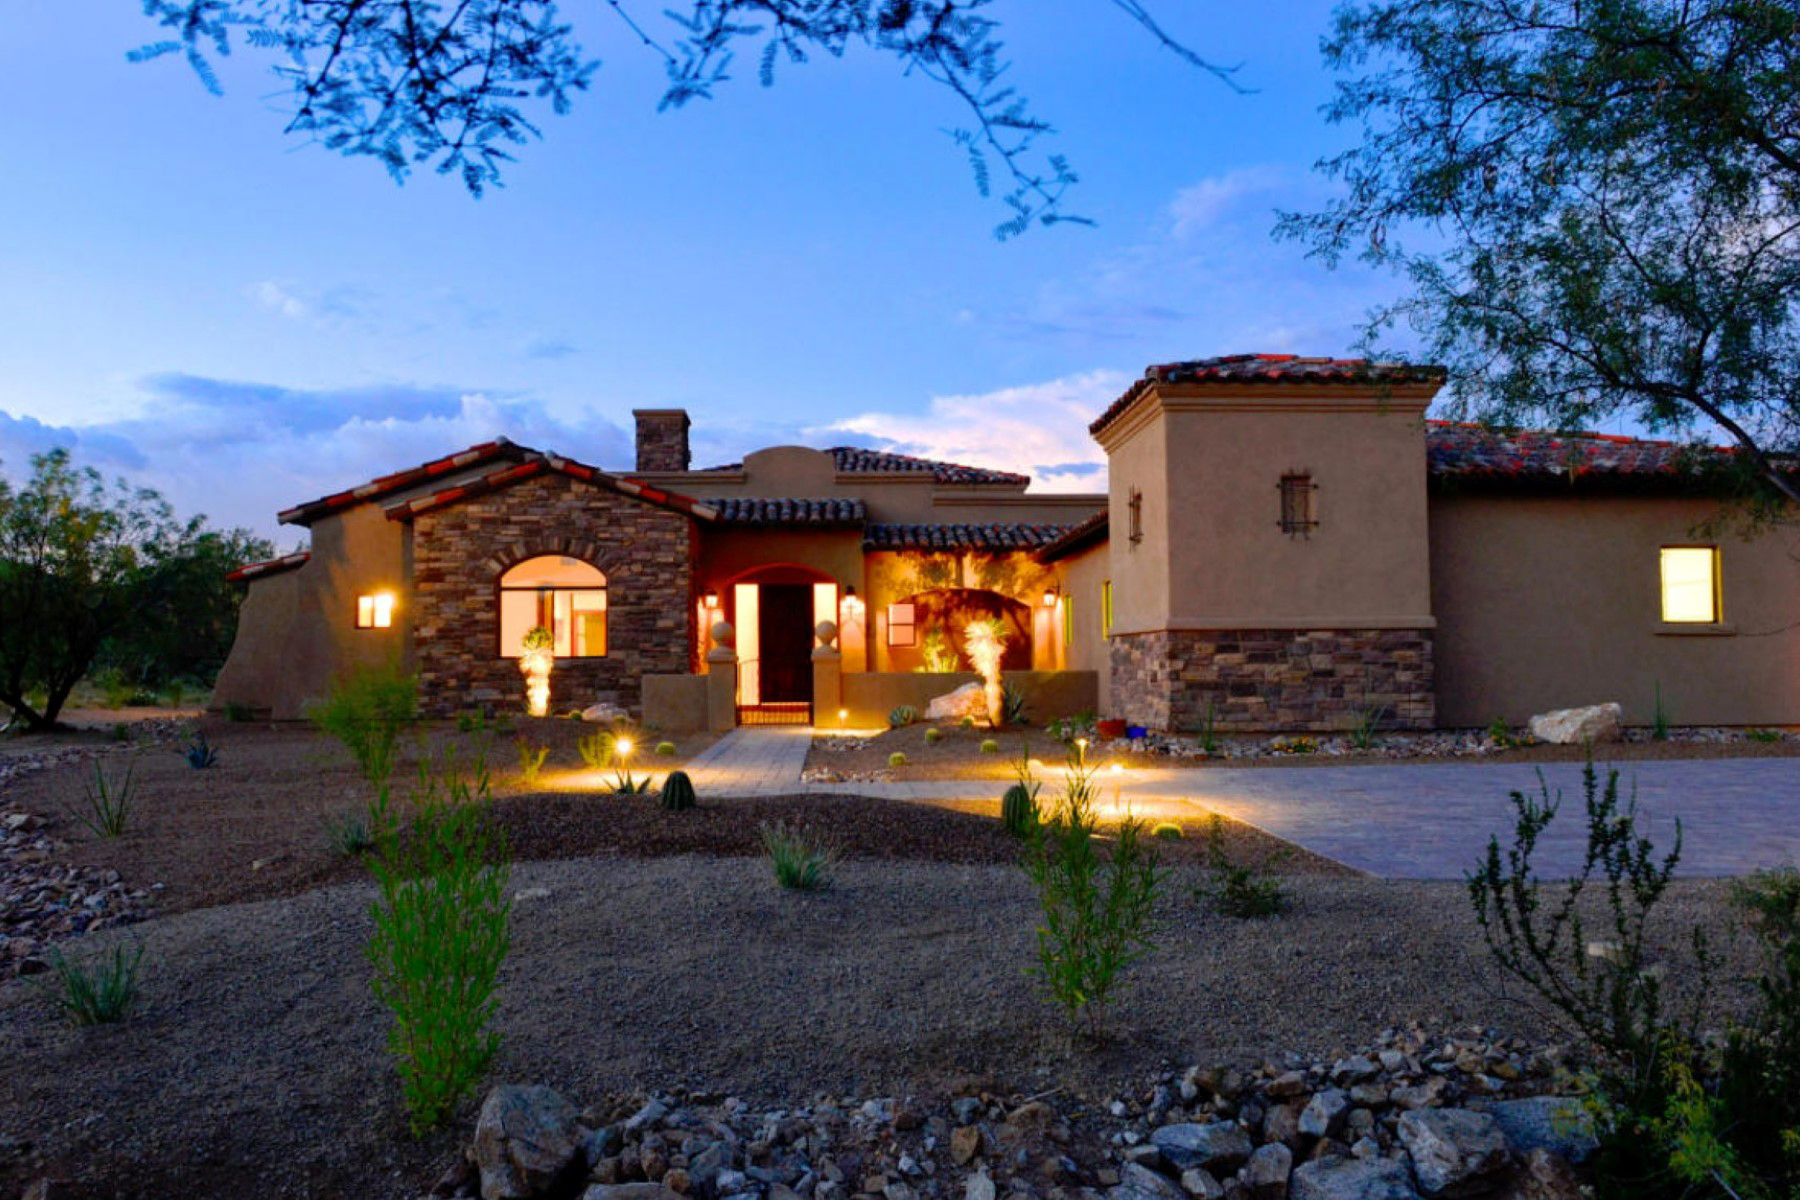 Maison unifamiliale pour l Vente à Captivating And Timeless Tuscan-Style Residence In Spectacular Stone Canyon 1272 W Stone Forest Place Oro Valley, Arizona 85755 États-Unis